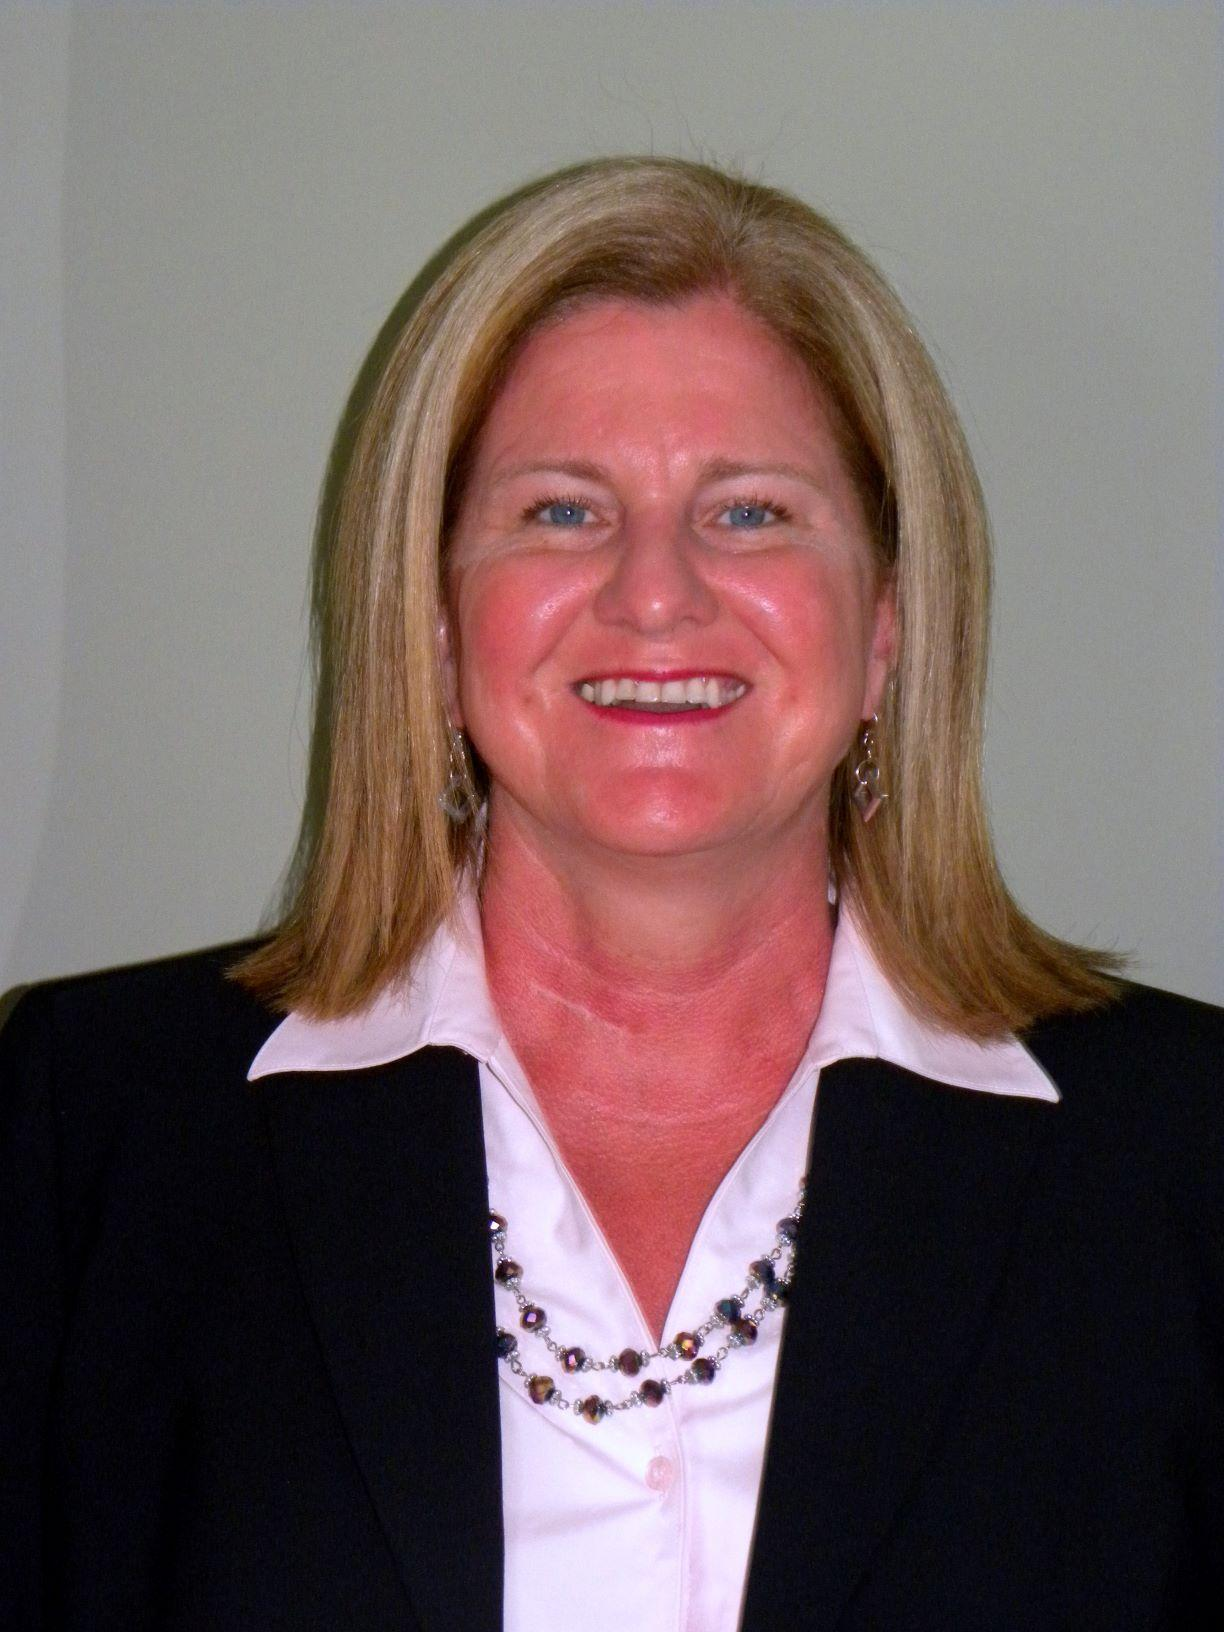 MARY HECKMANN Financial Professional & Insurance Agent